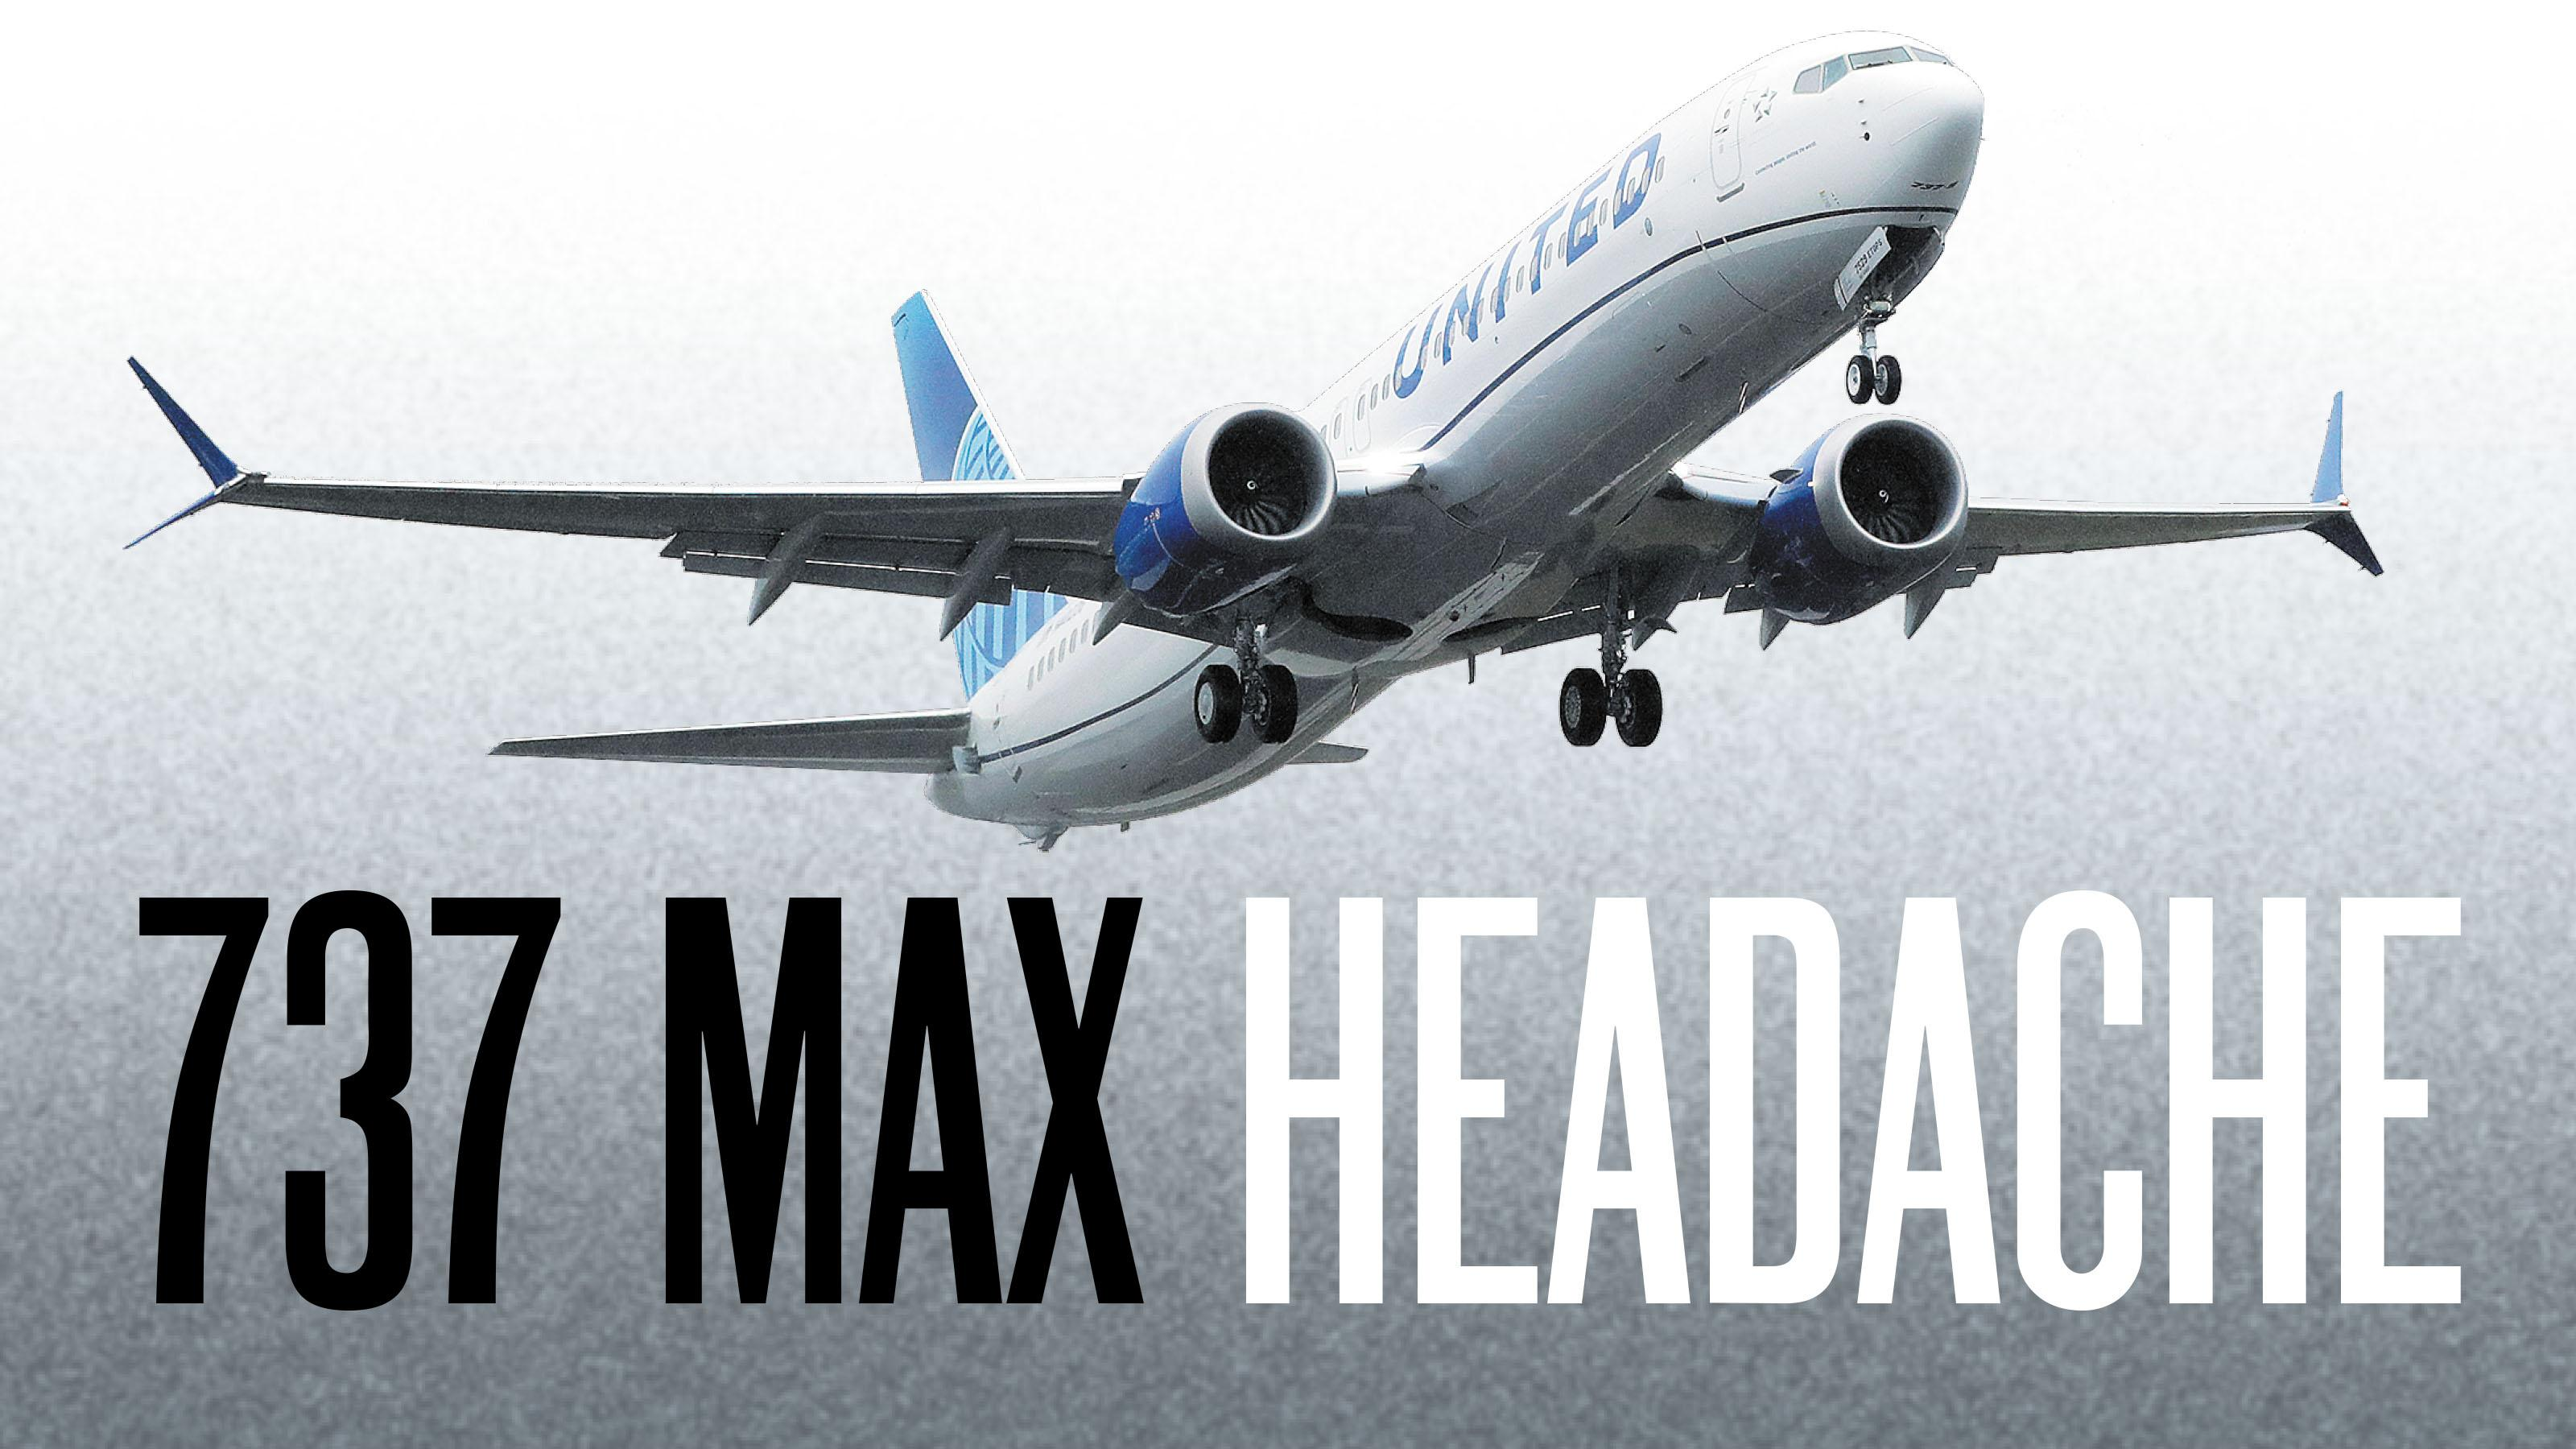 Max: Debris found in new planes' fuel tanks